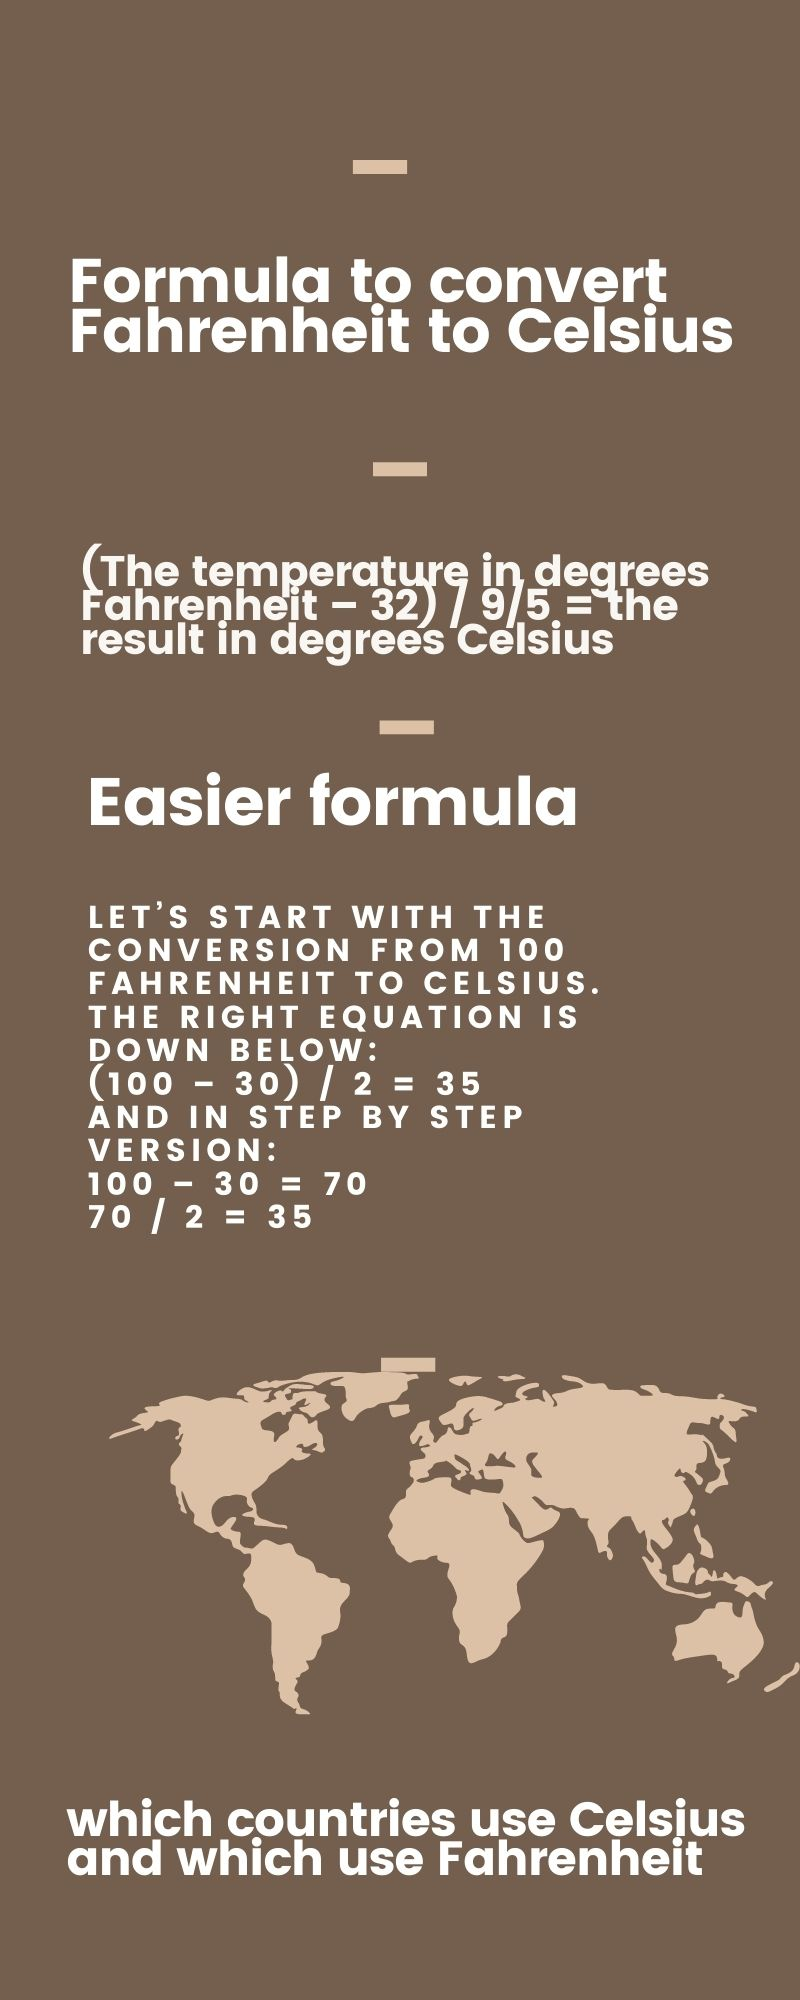 Formula on how to convert Fahrenheit to Celsius - infographic